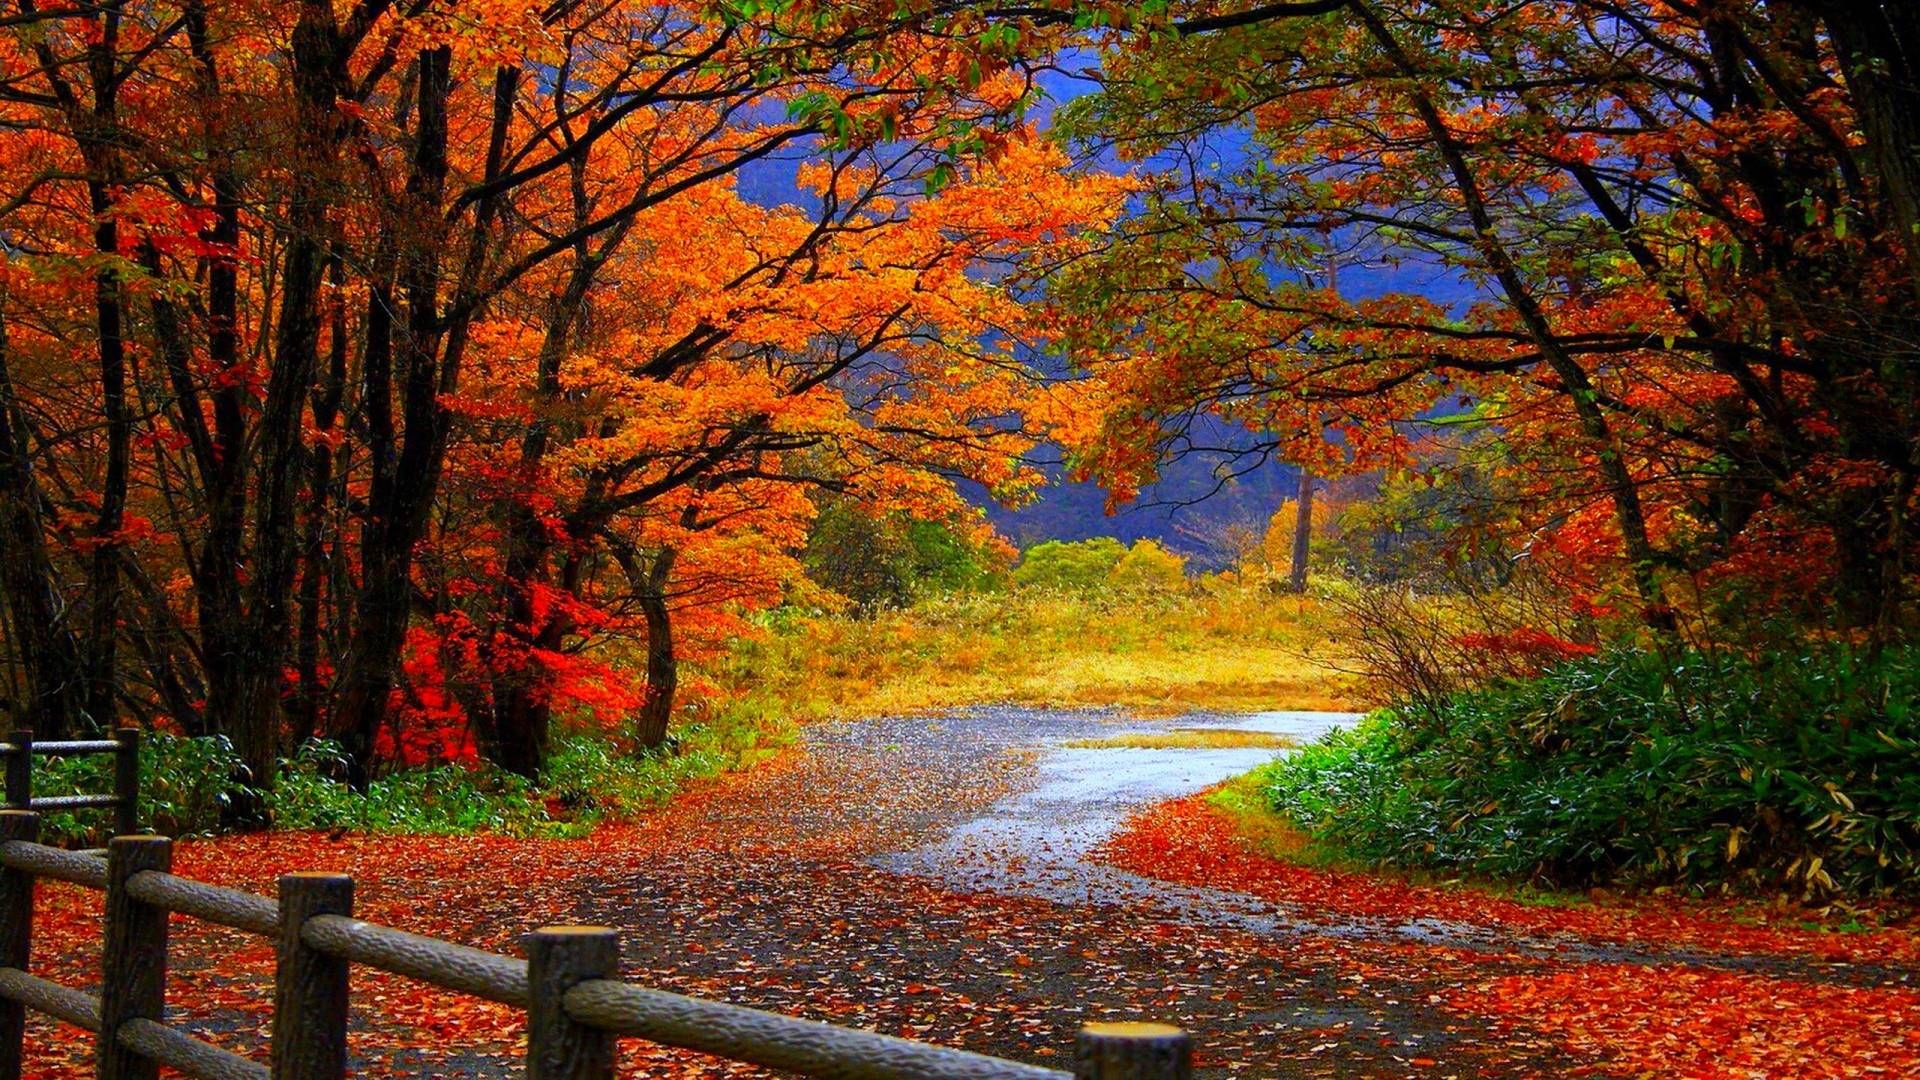 Free Desktop Wallpapers Fall Scenes Wallpaper Cave Scenery Wallpaper Landscape Wallpaper Desktop Wallpaper Fall